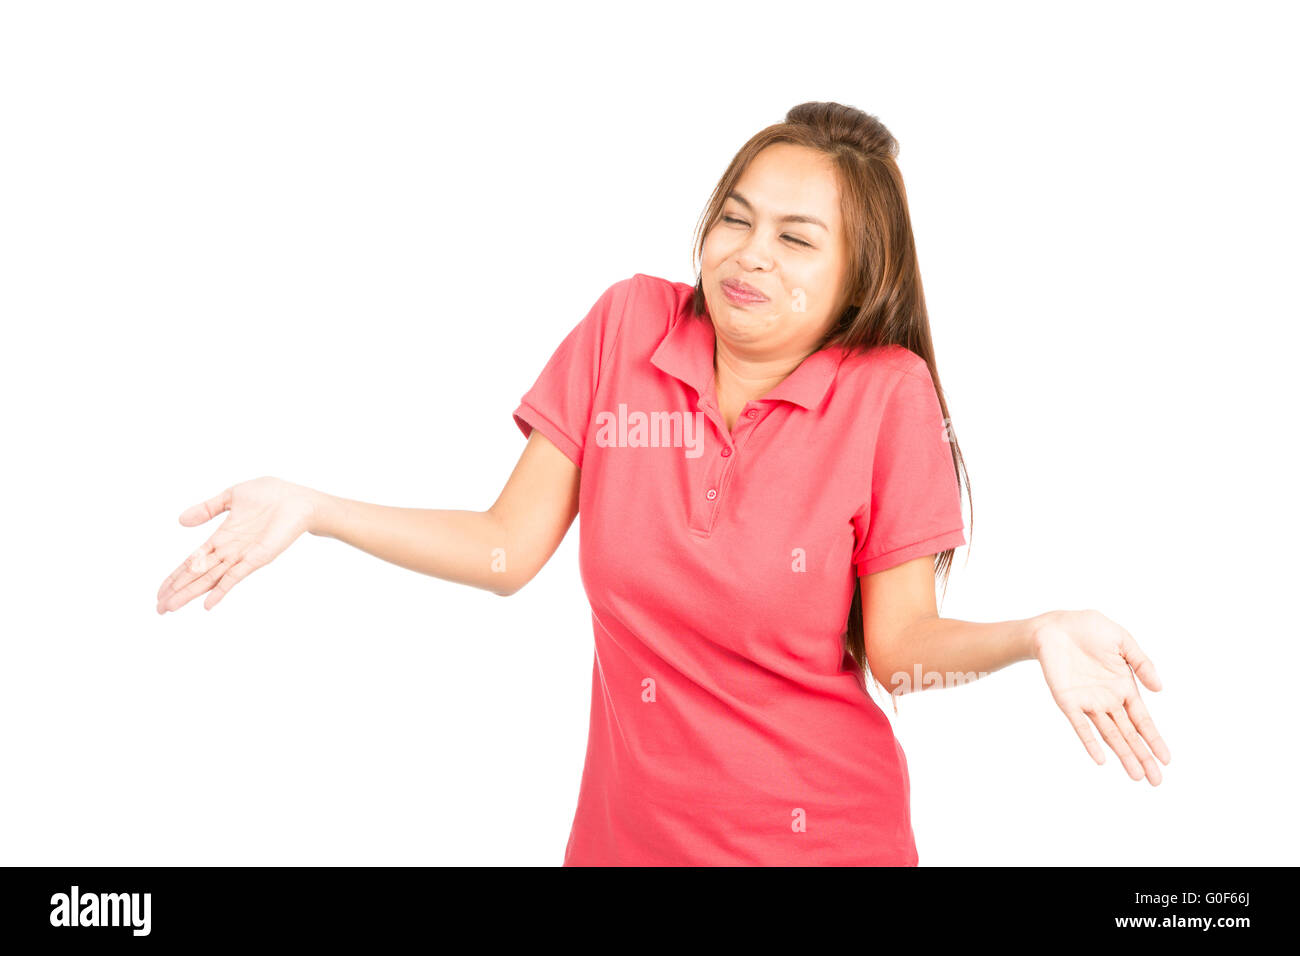 Laughing Asian Woman Shrugging Shoulders - Stock Image